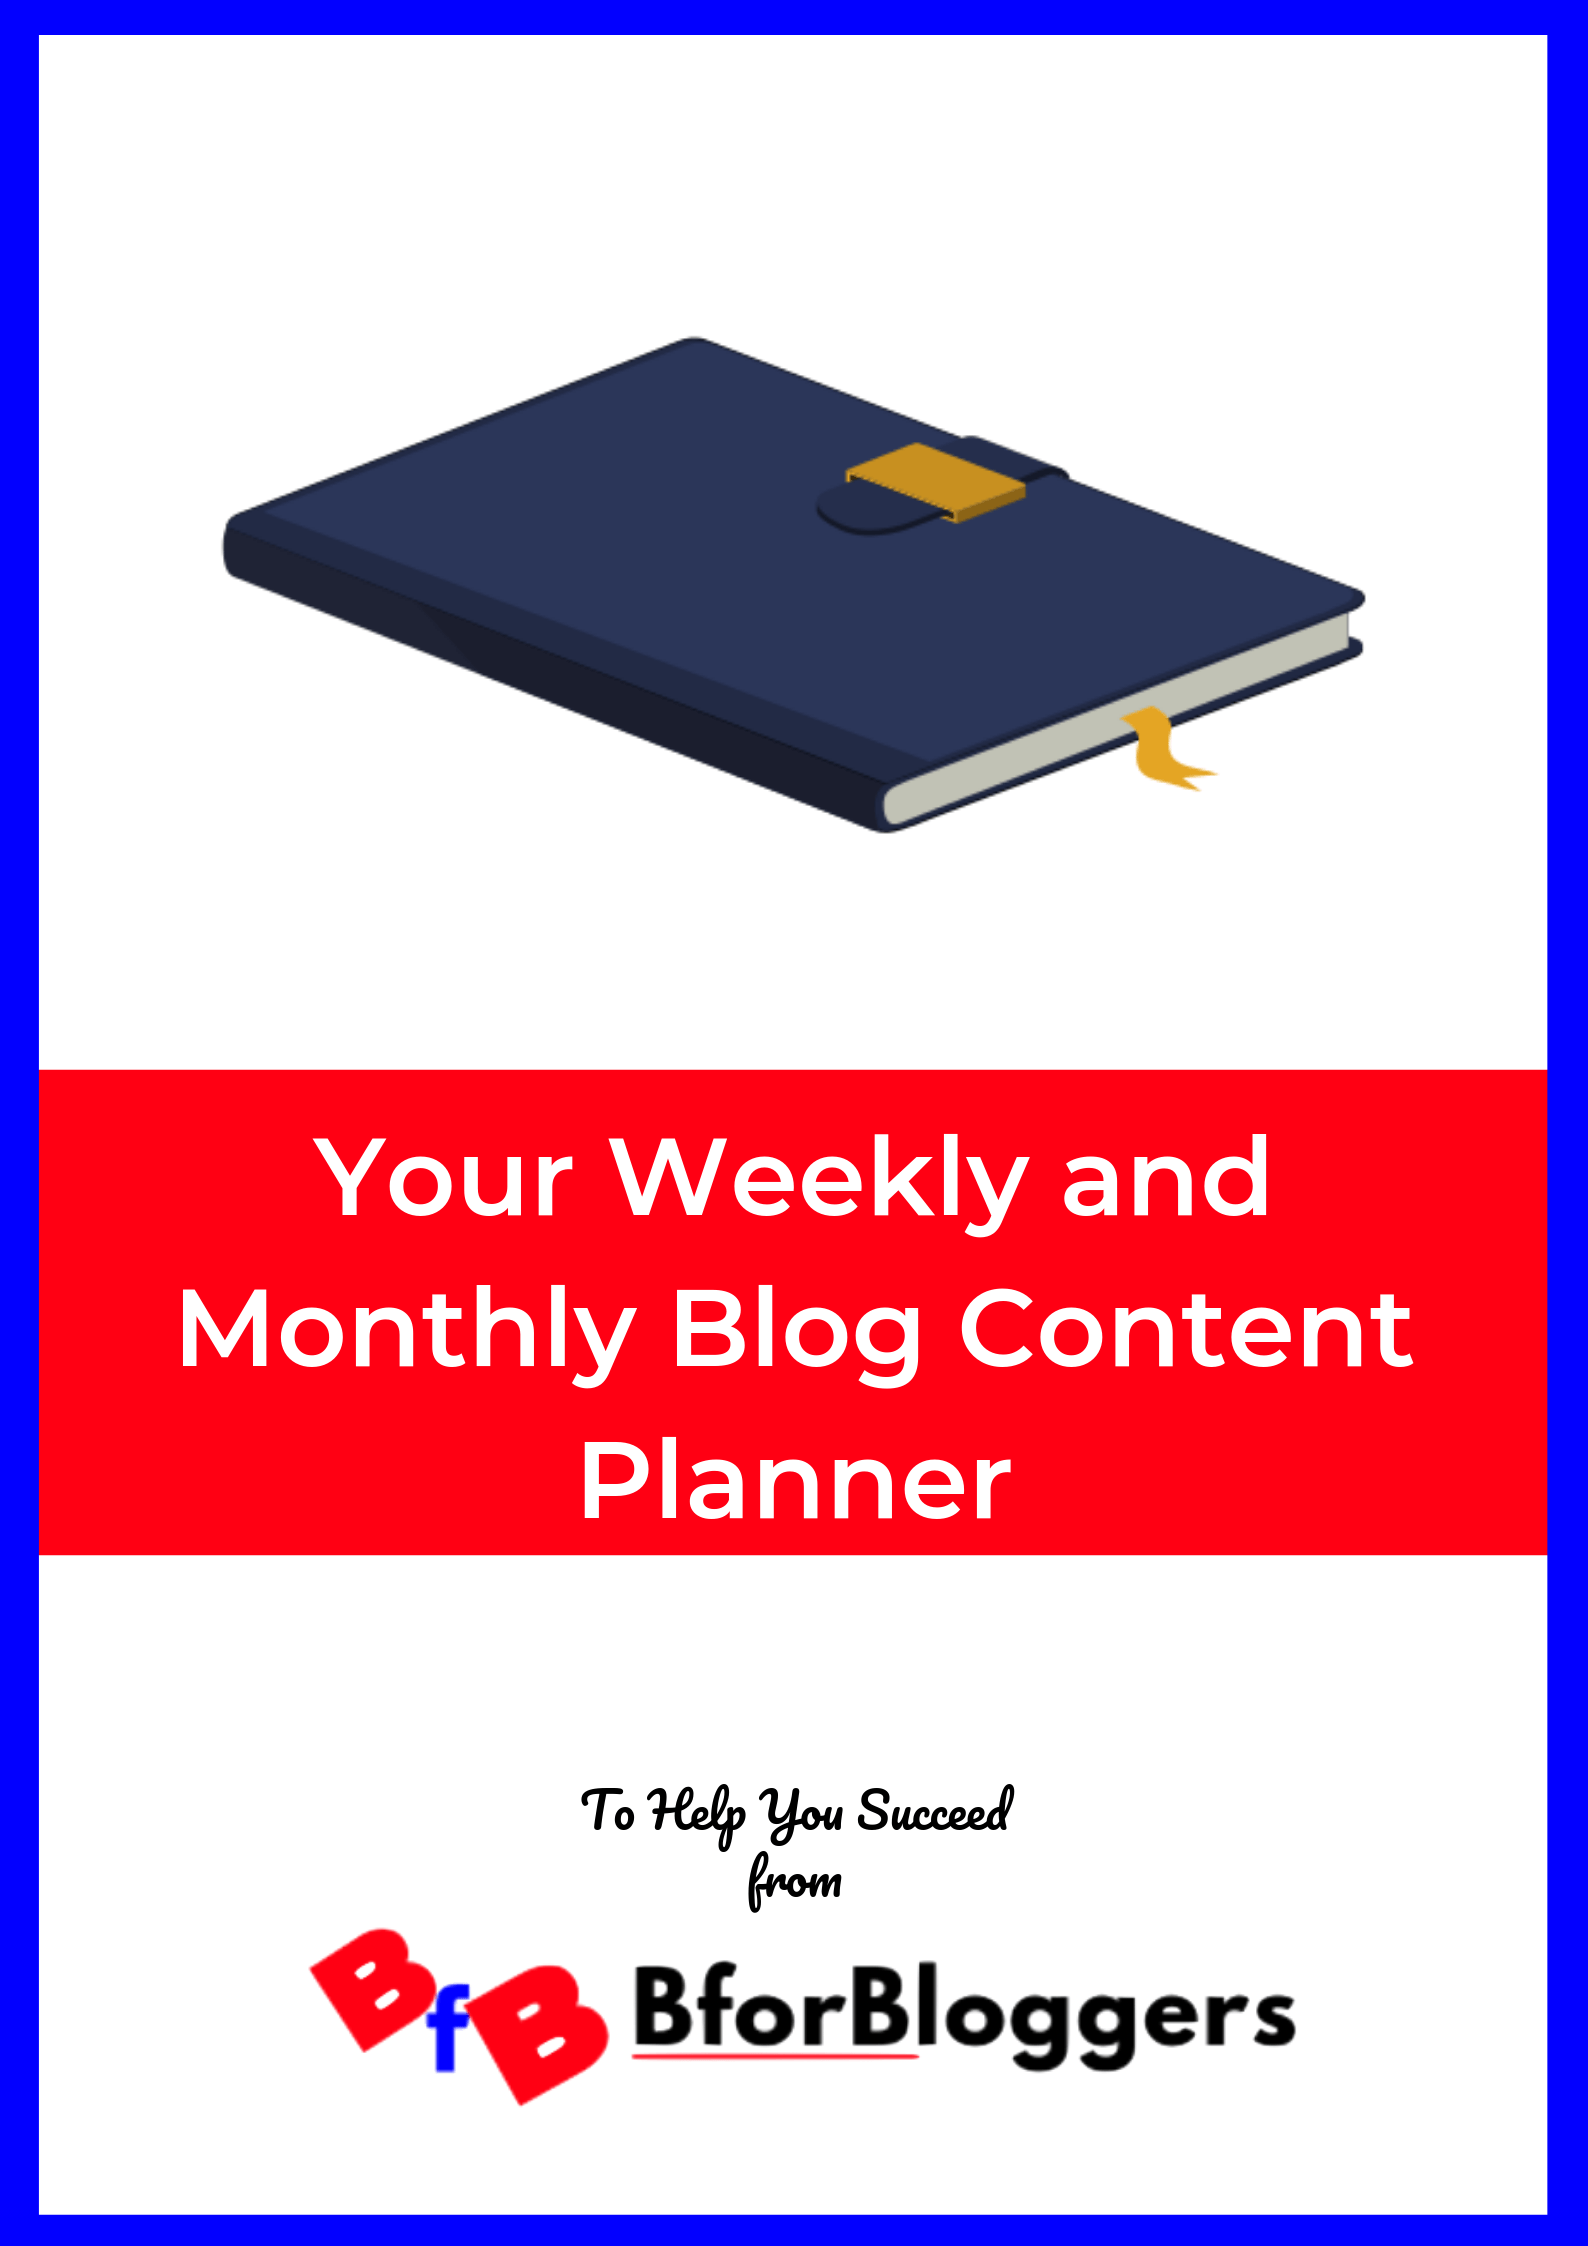 Your-Weekly-and-Monthly-Blog-Content-Planner